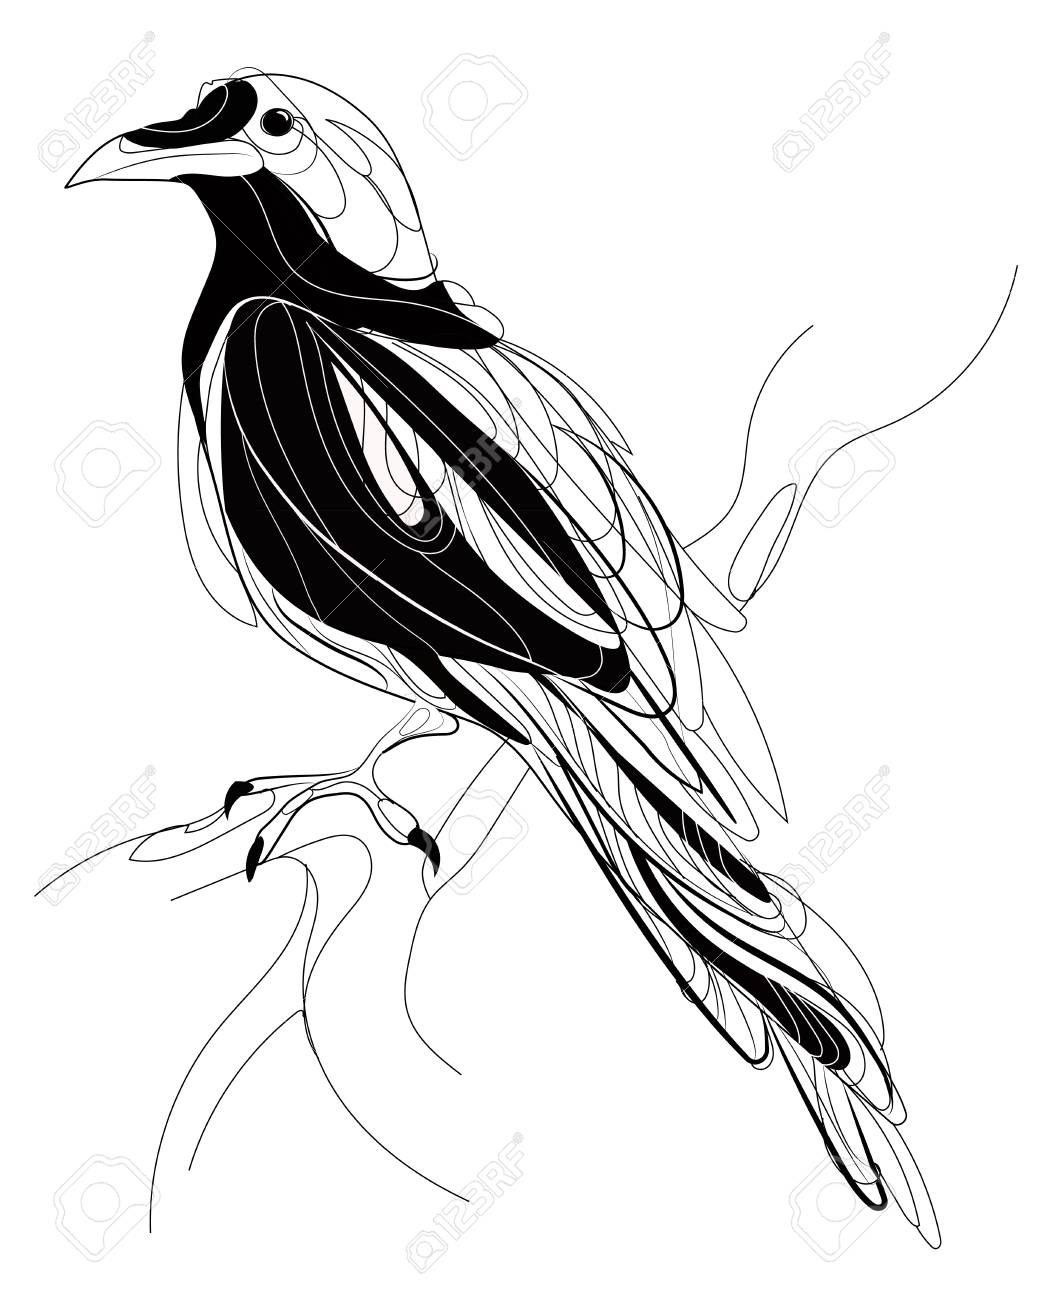 1053x1300 A Crow Sitting On A Branch. Stylized Magpie On A Tree. Black